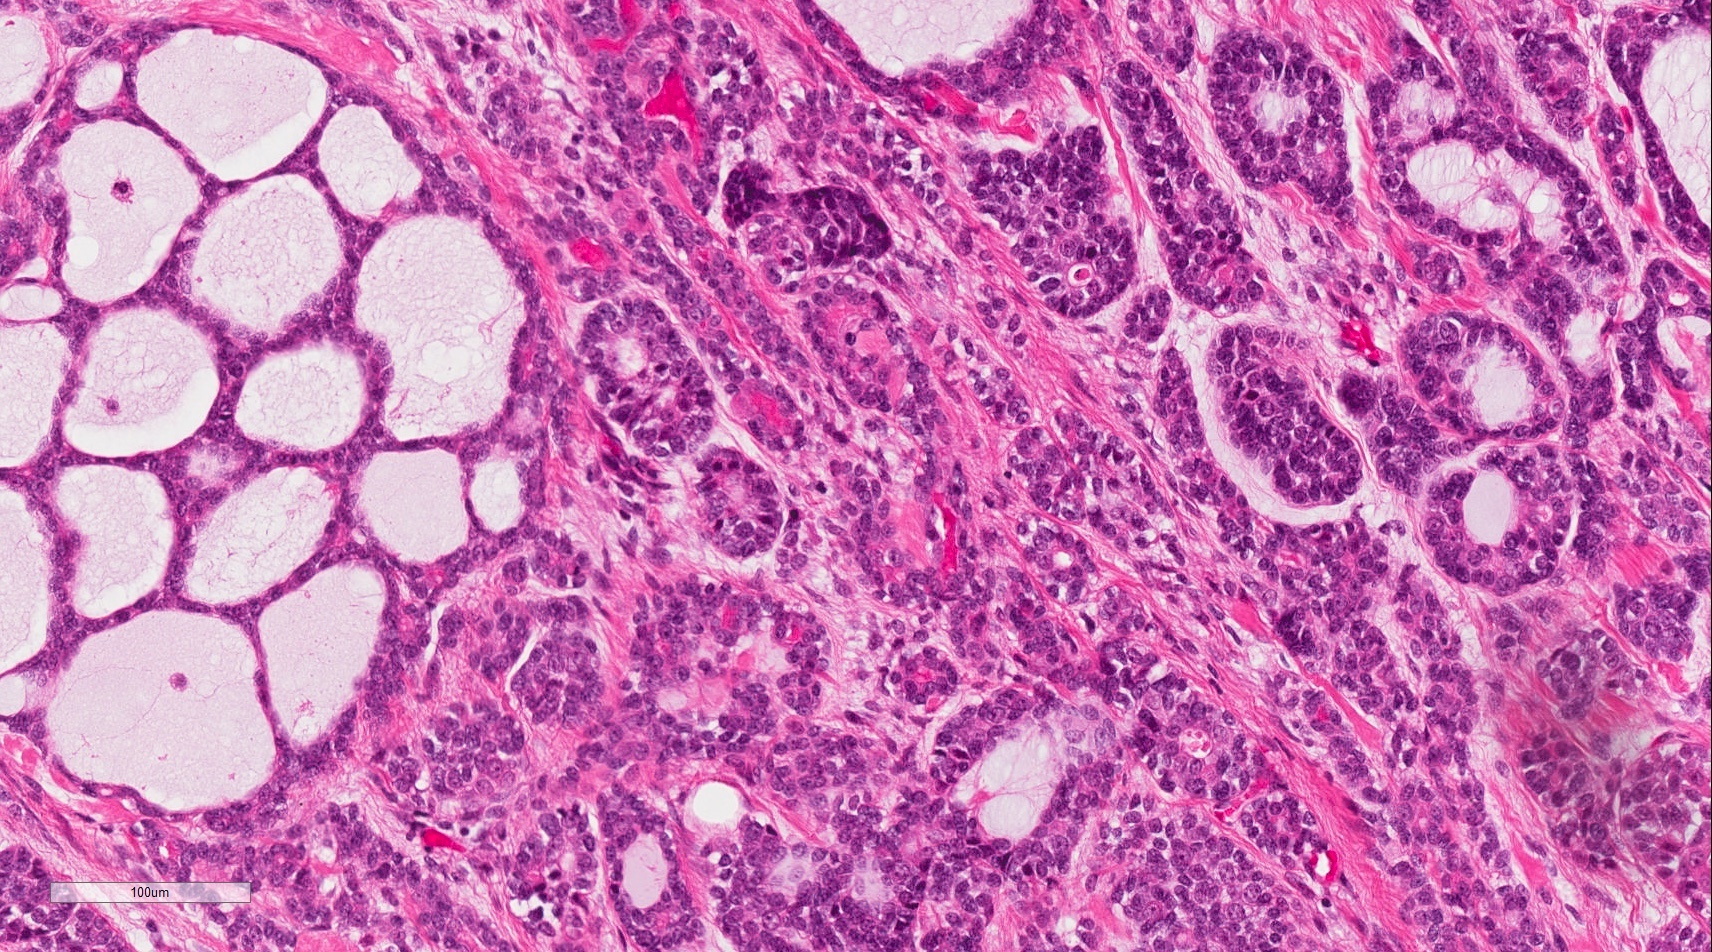 Pathology Outlines Adenoid Cystic Carcinoma